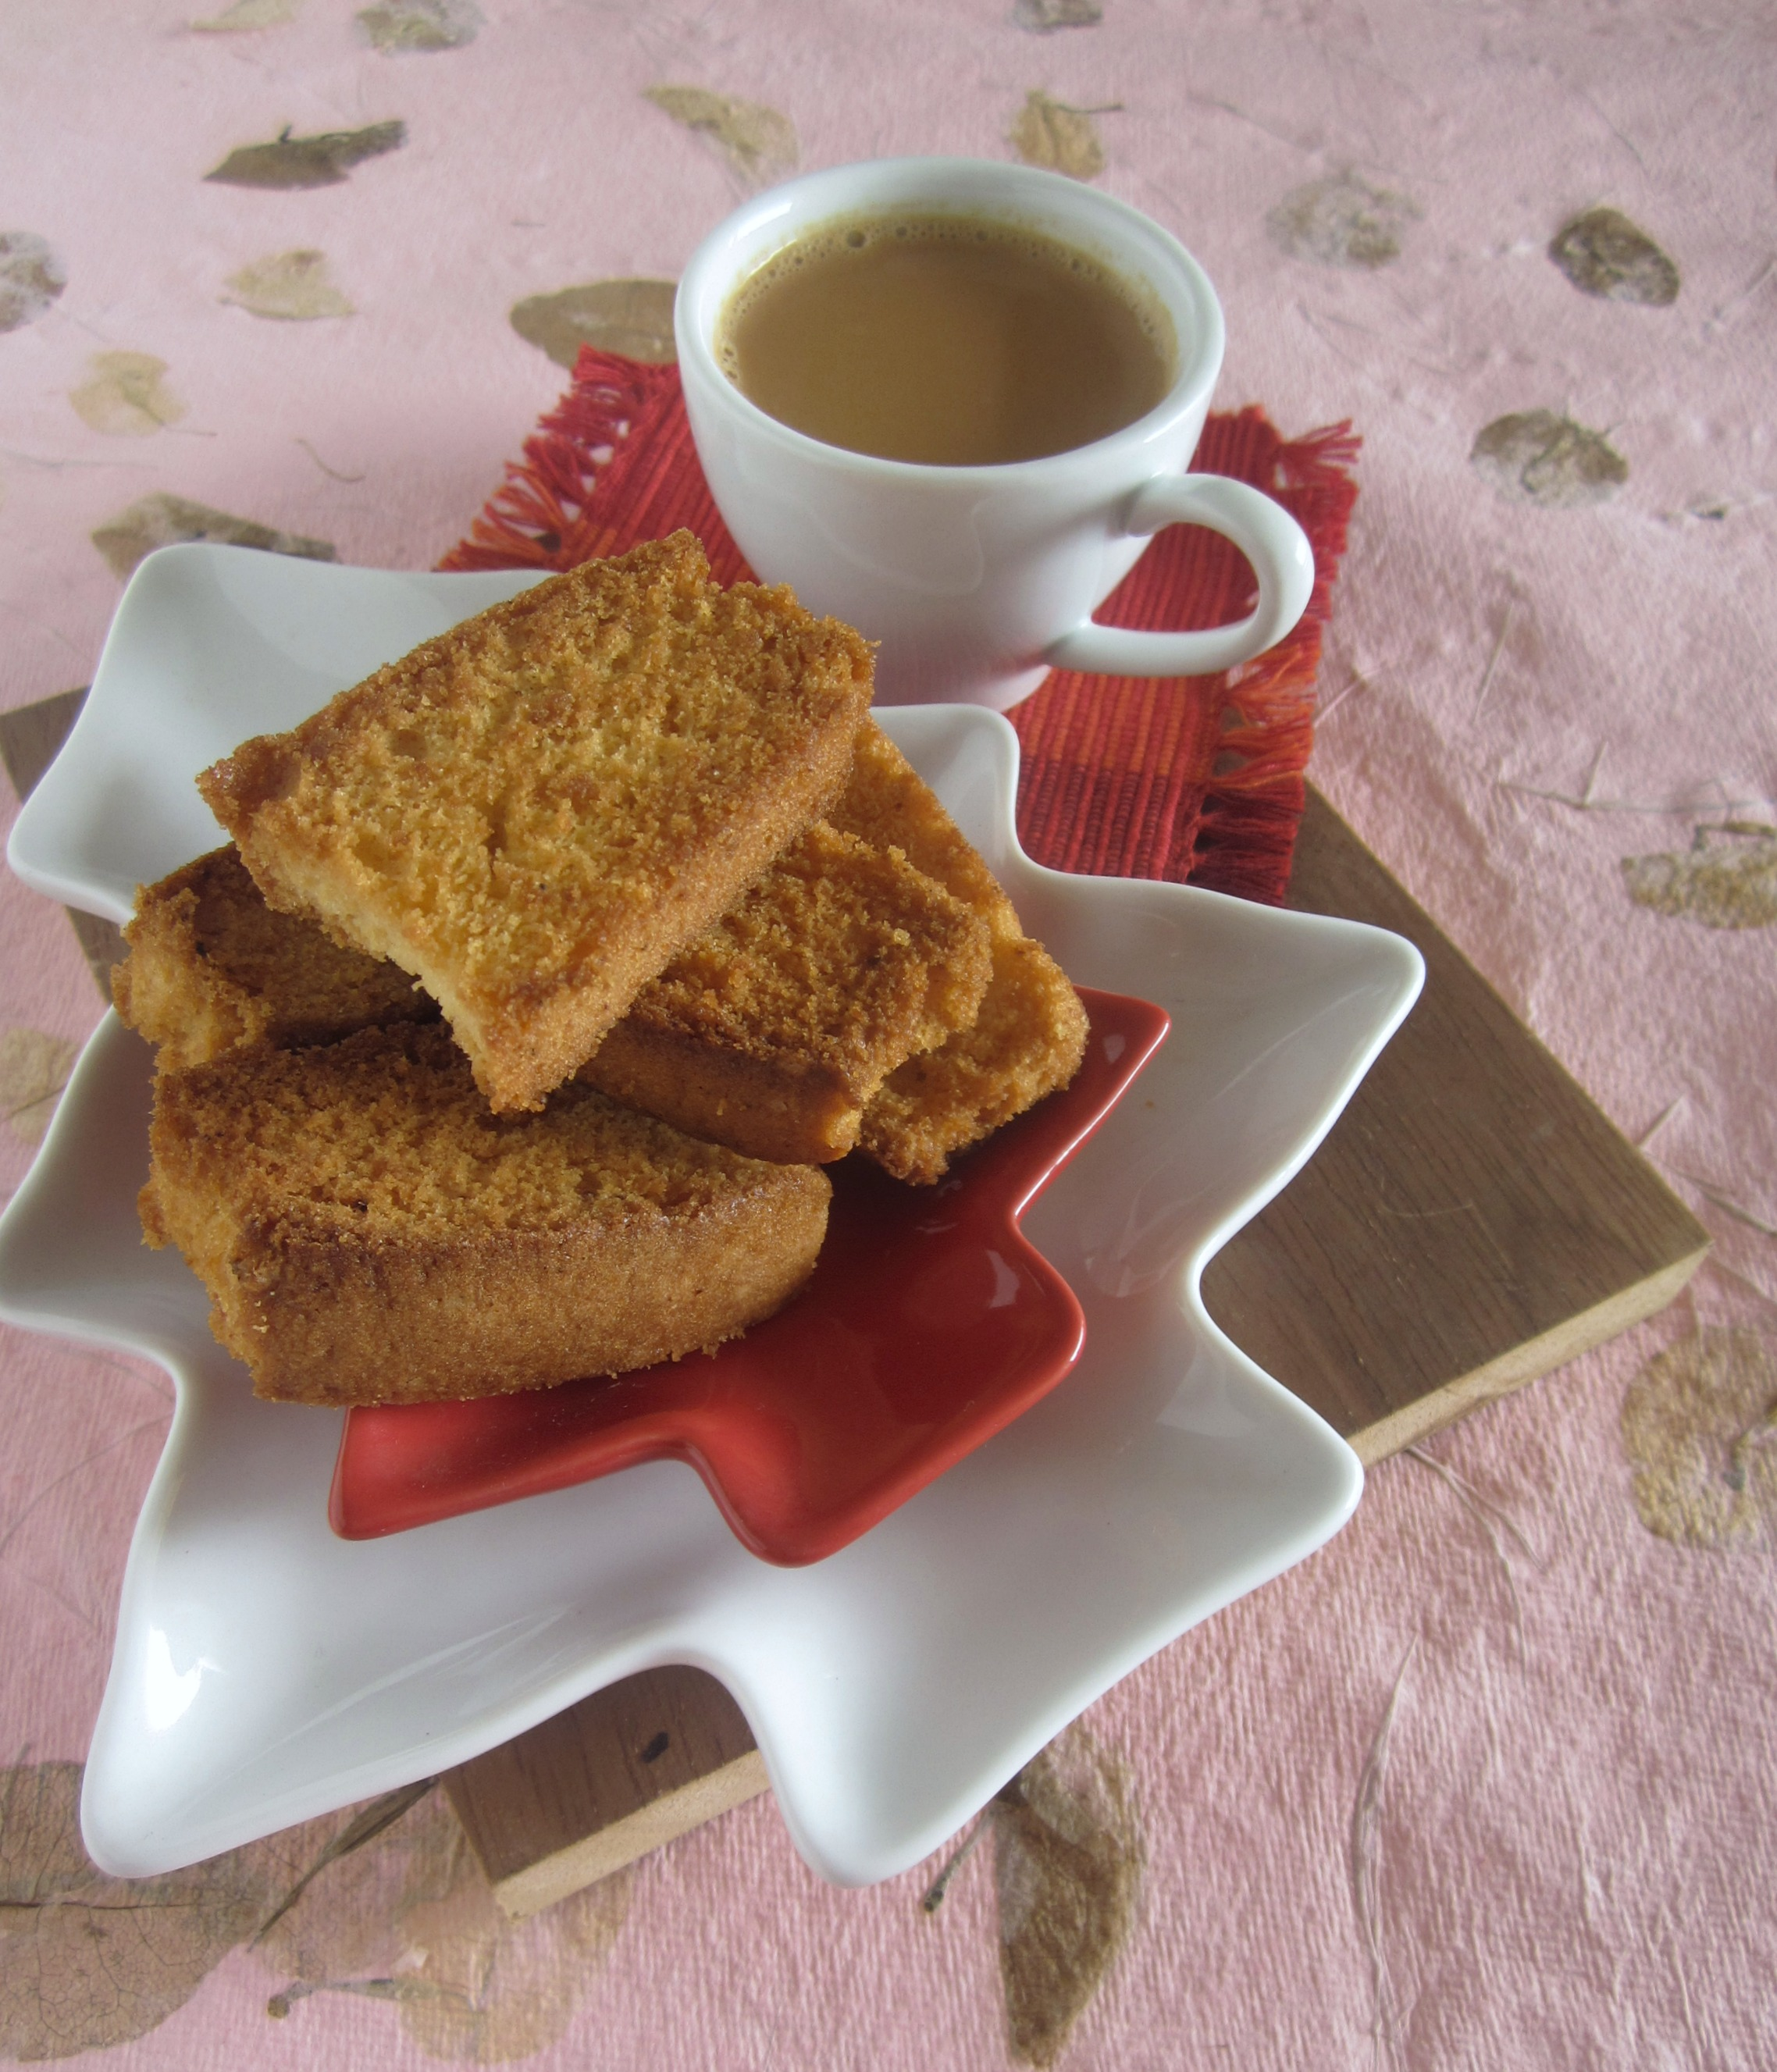 File:Indian Style Tea Biscuits with Chai.jpg - Wikimedia Commons